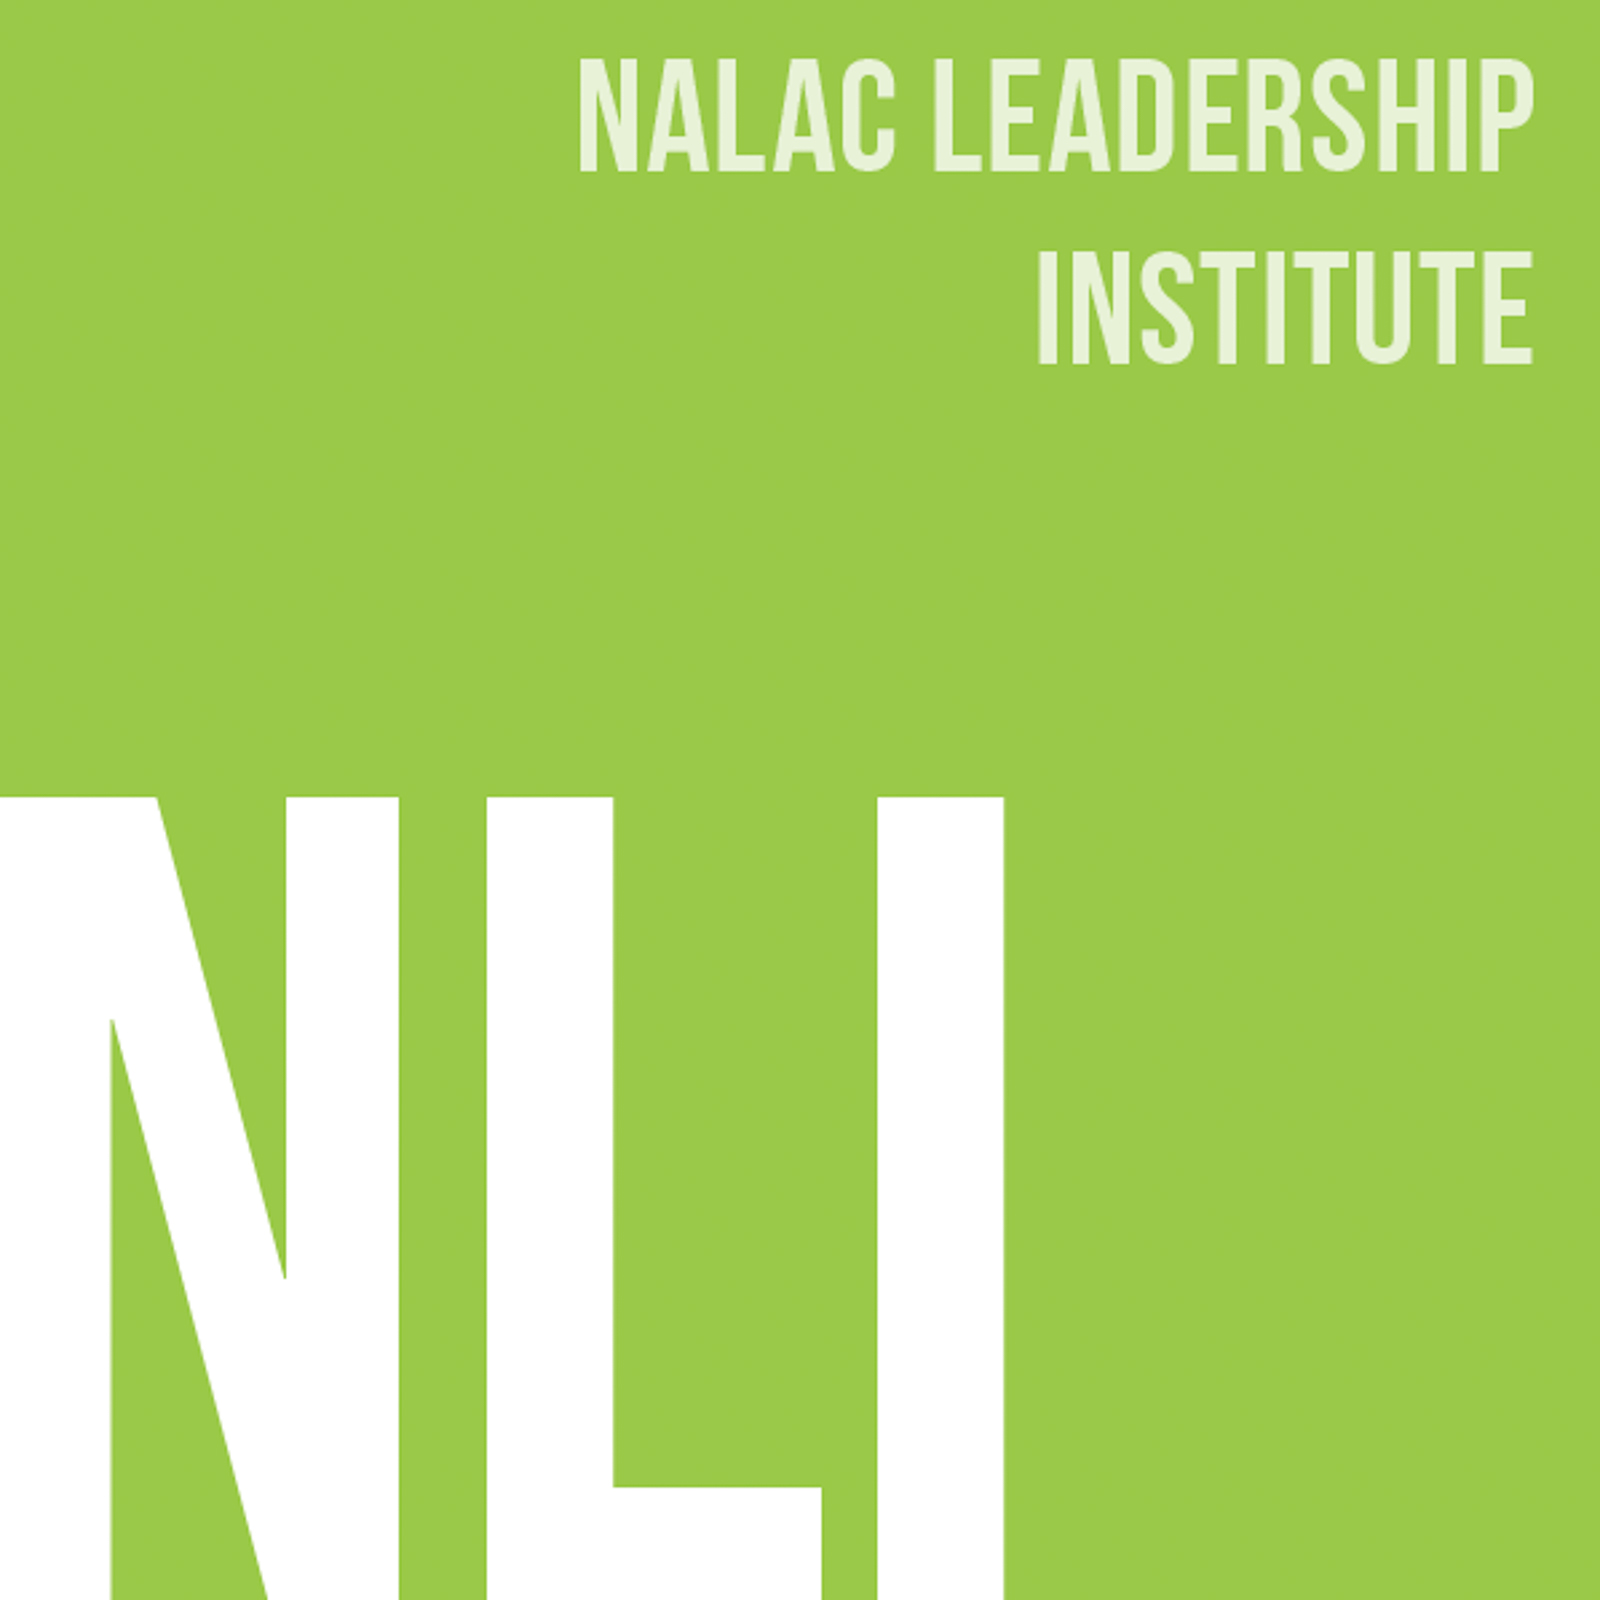 2021 NALAC Leadership Insitute Full Tuition